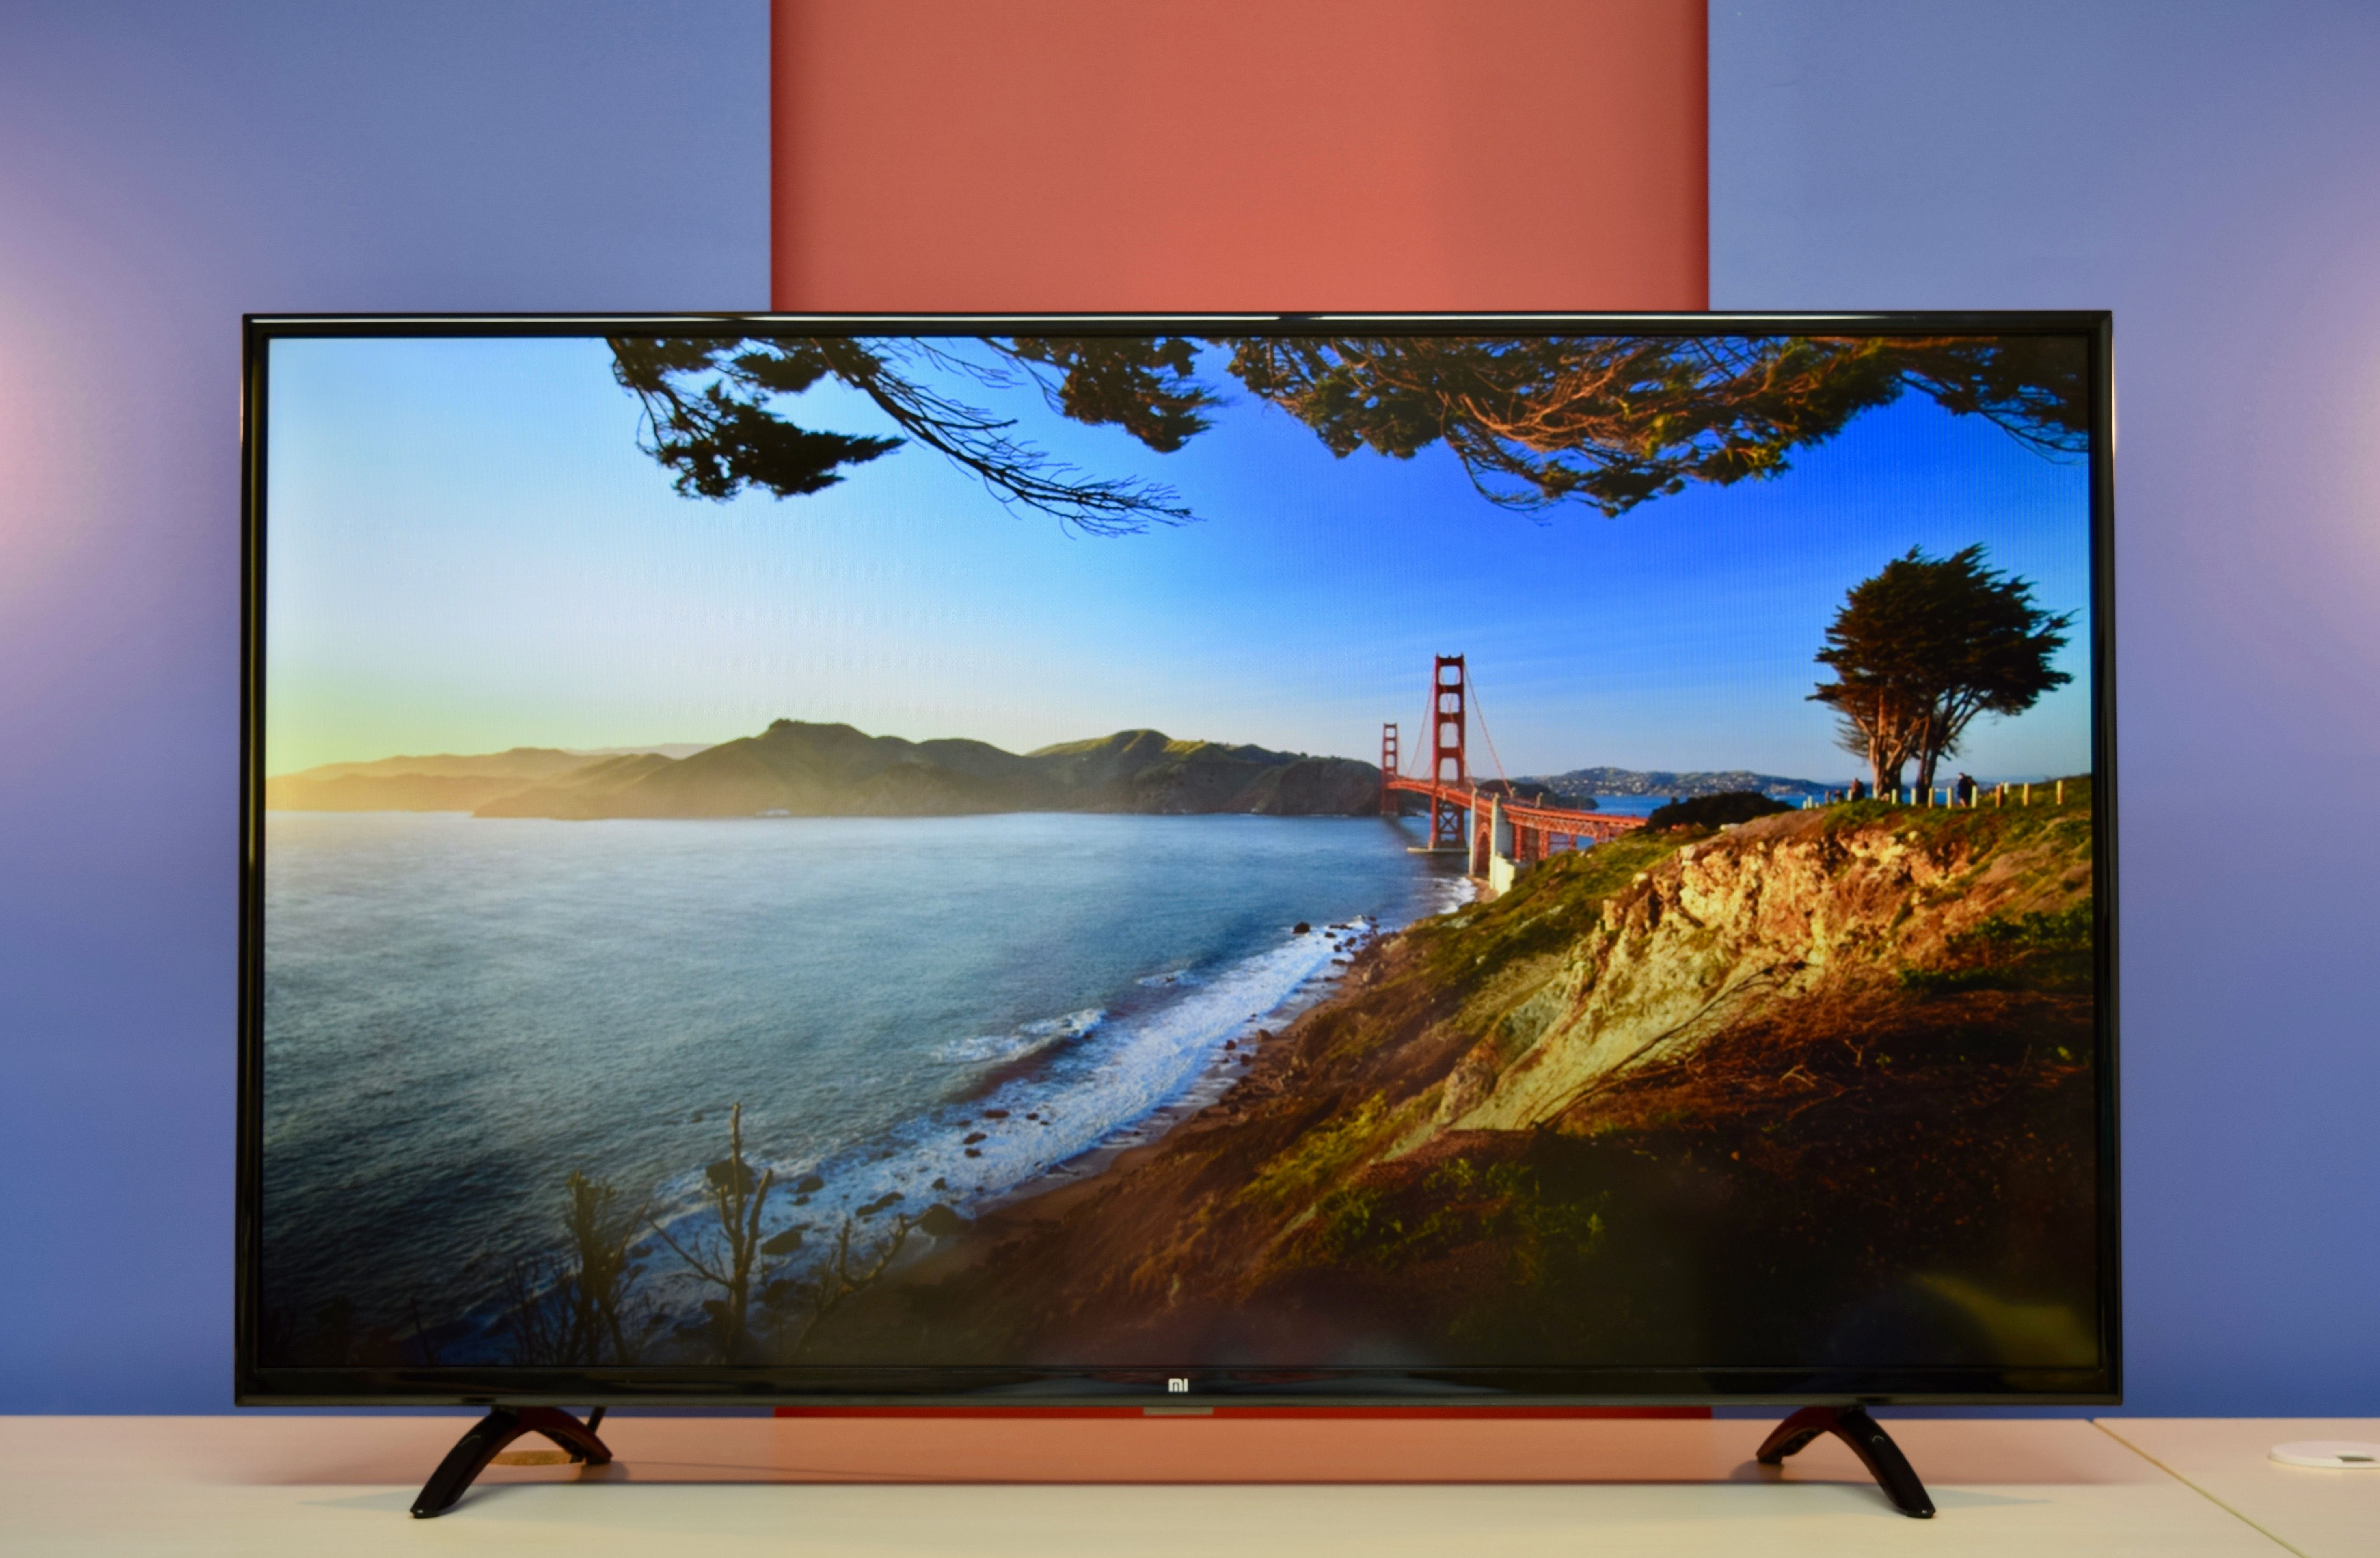 Xiaomi Mi LED TV 4A Pro 43 Review: No Netflix And Chill